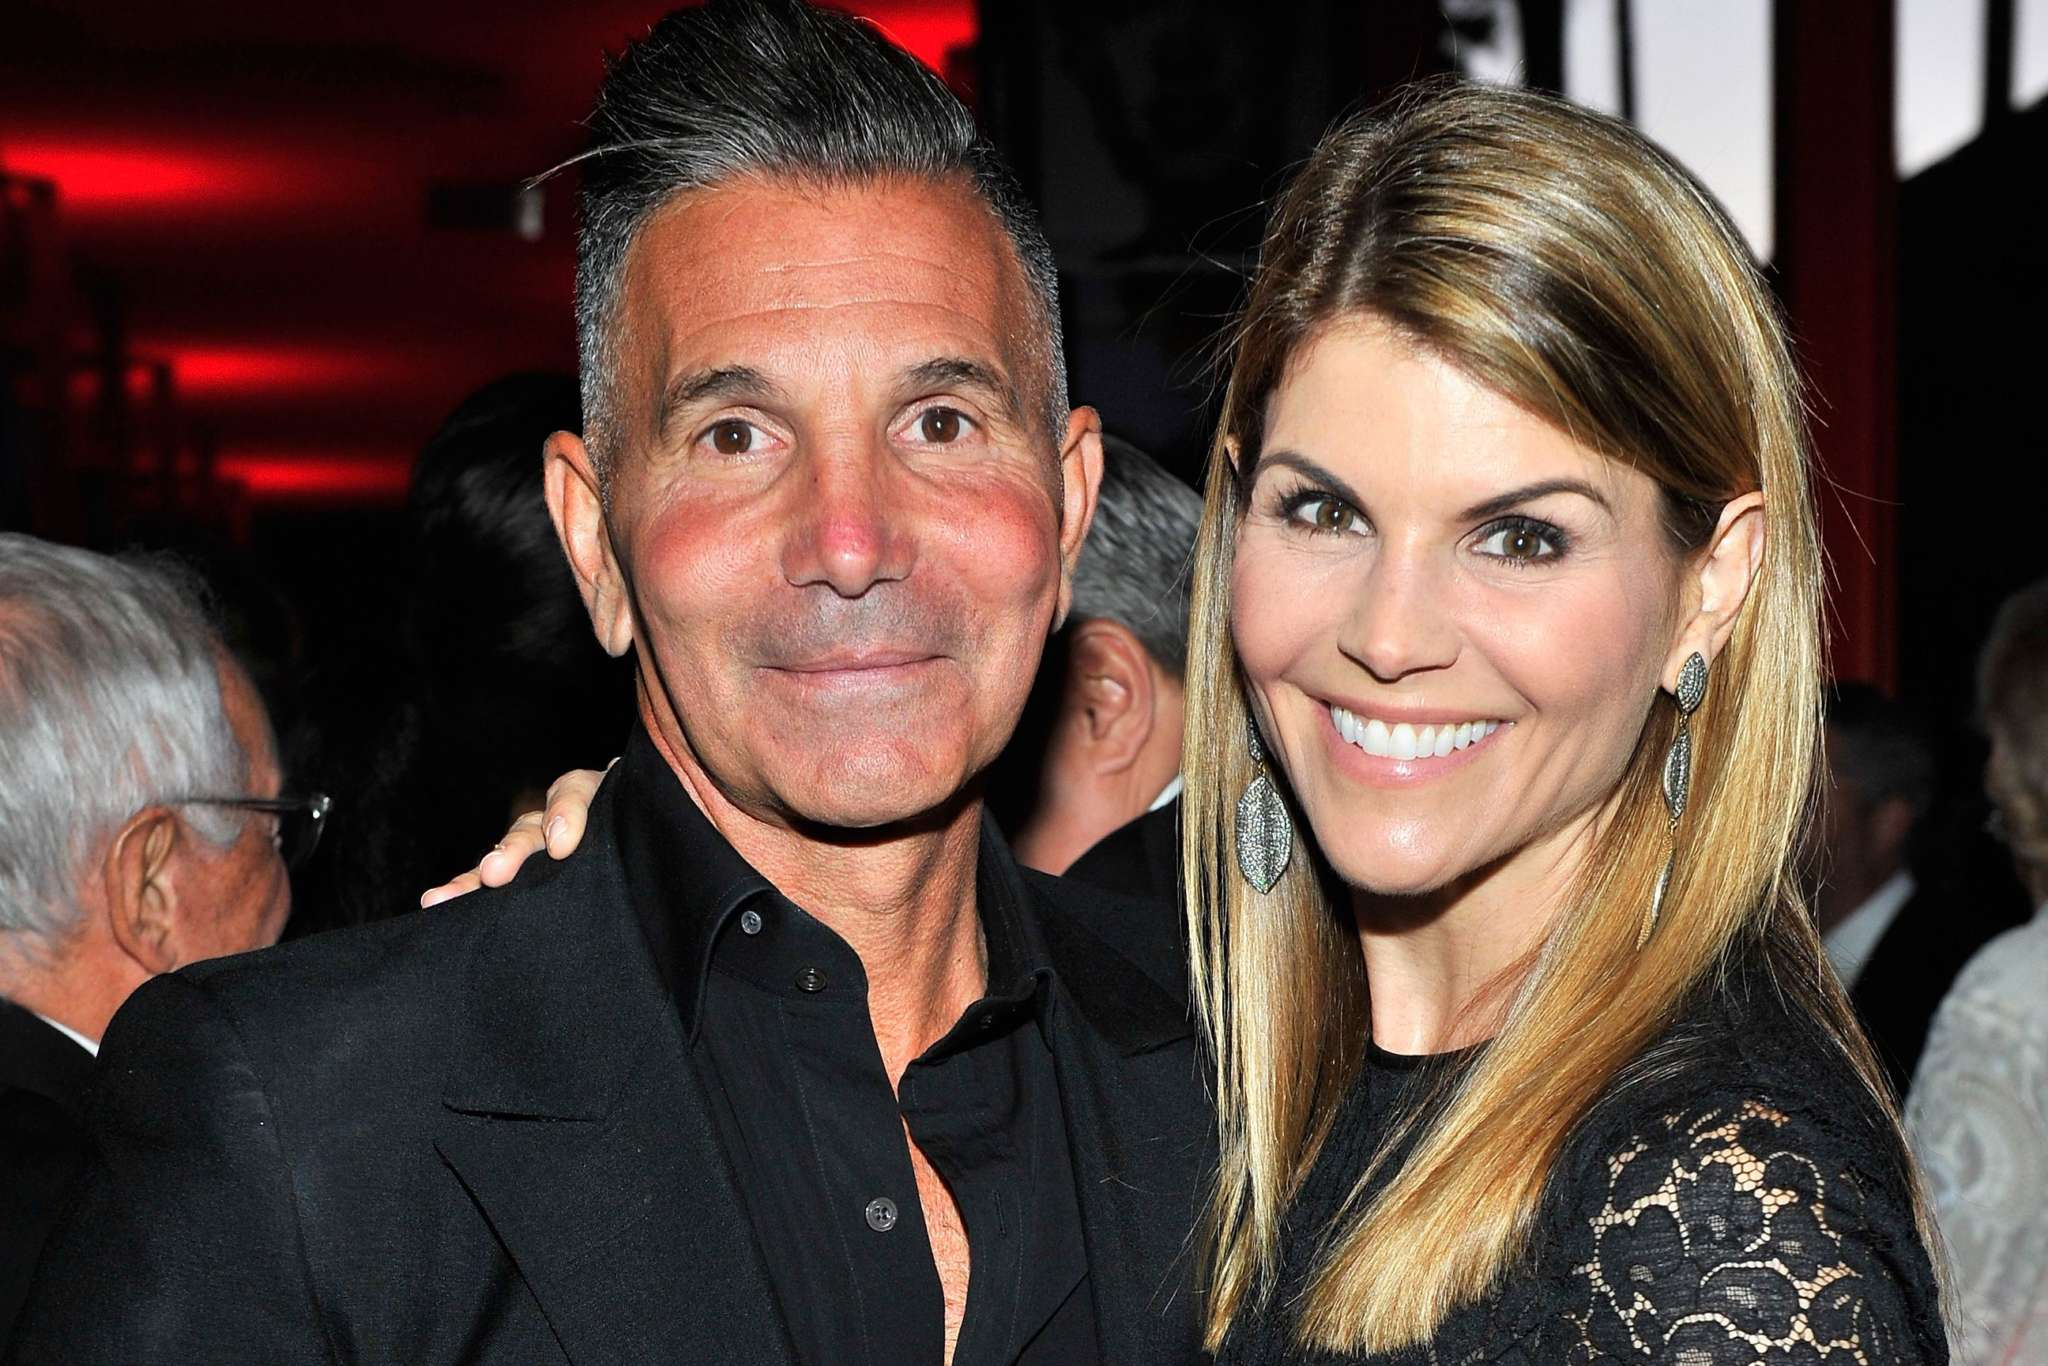 read-lori-loughlins-speech-before-being-sentenced-to-prison-i-wish-i-could-go-back-and-do-things-differently